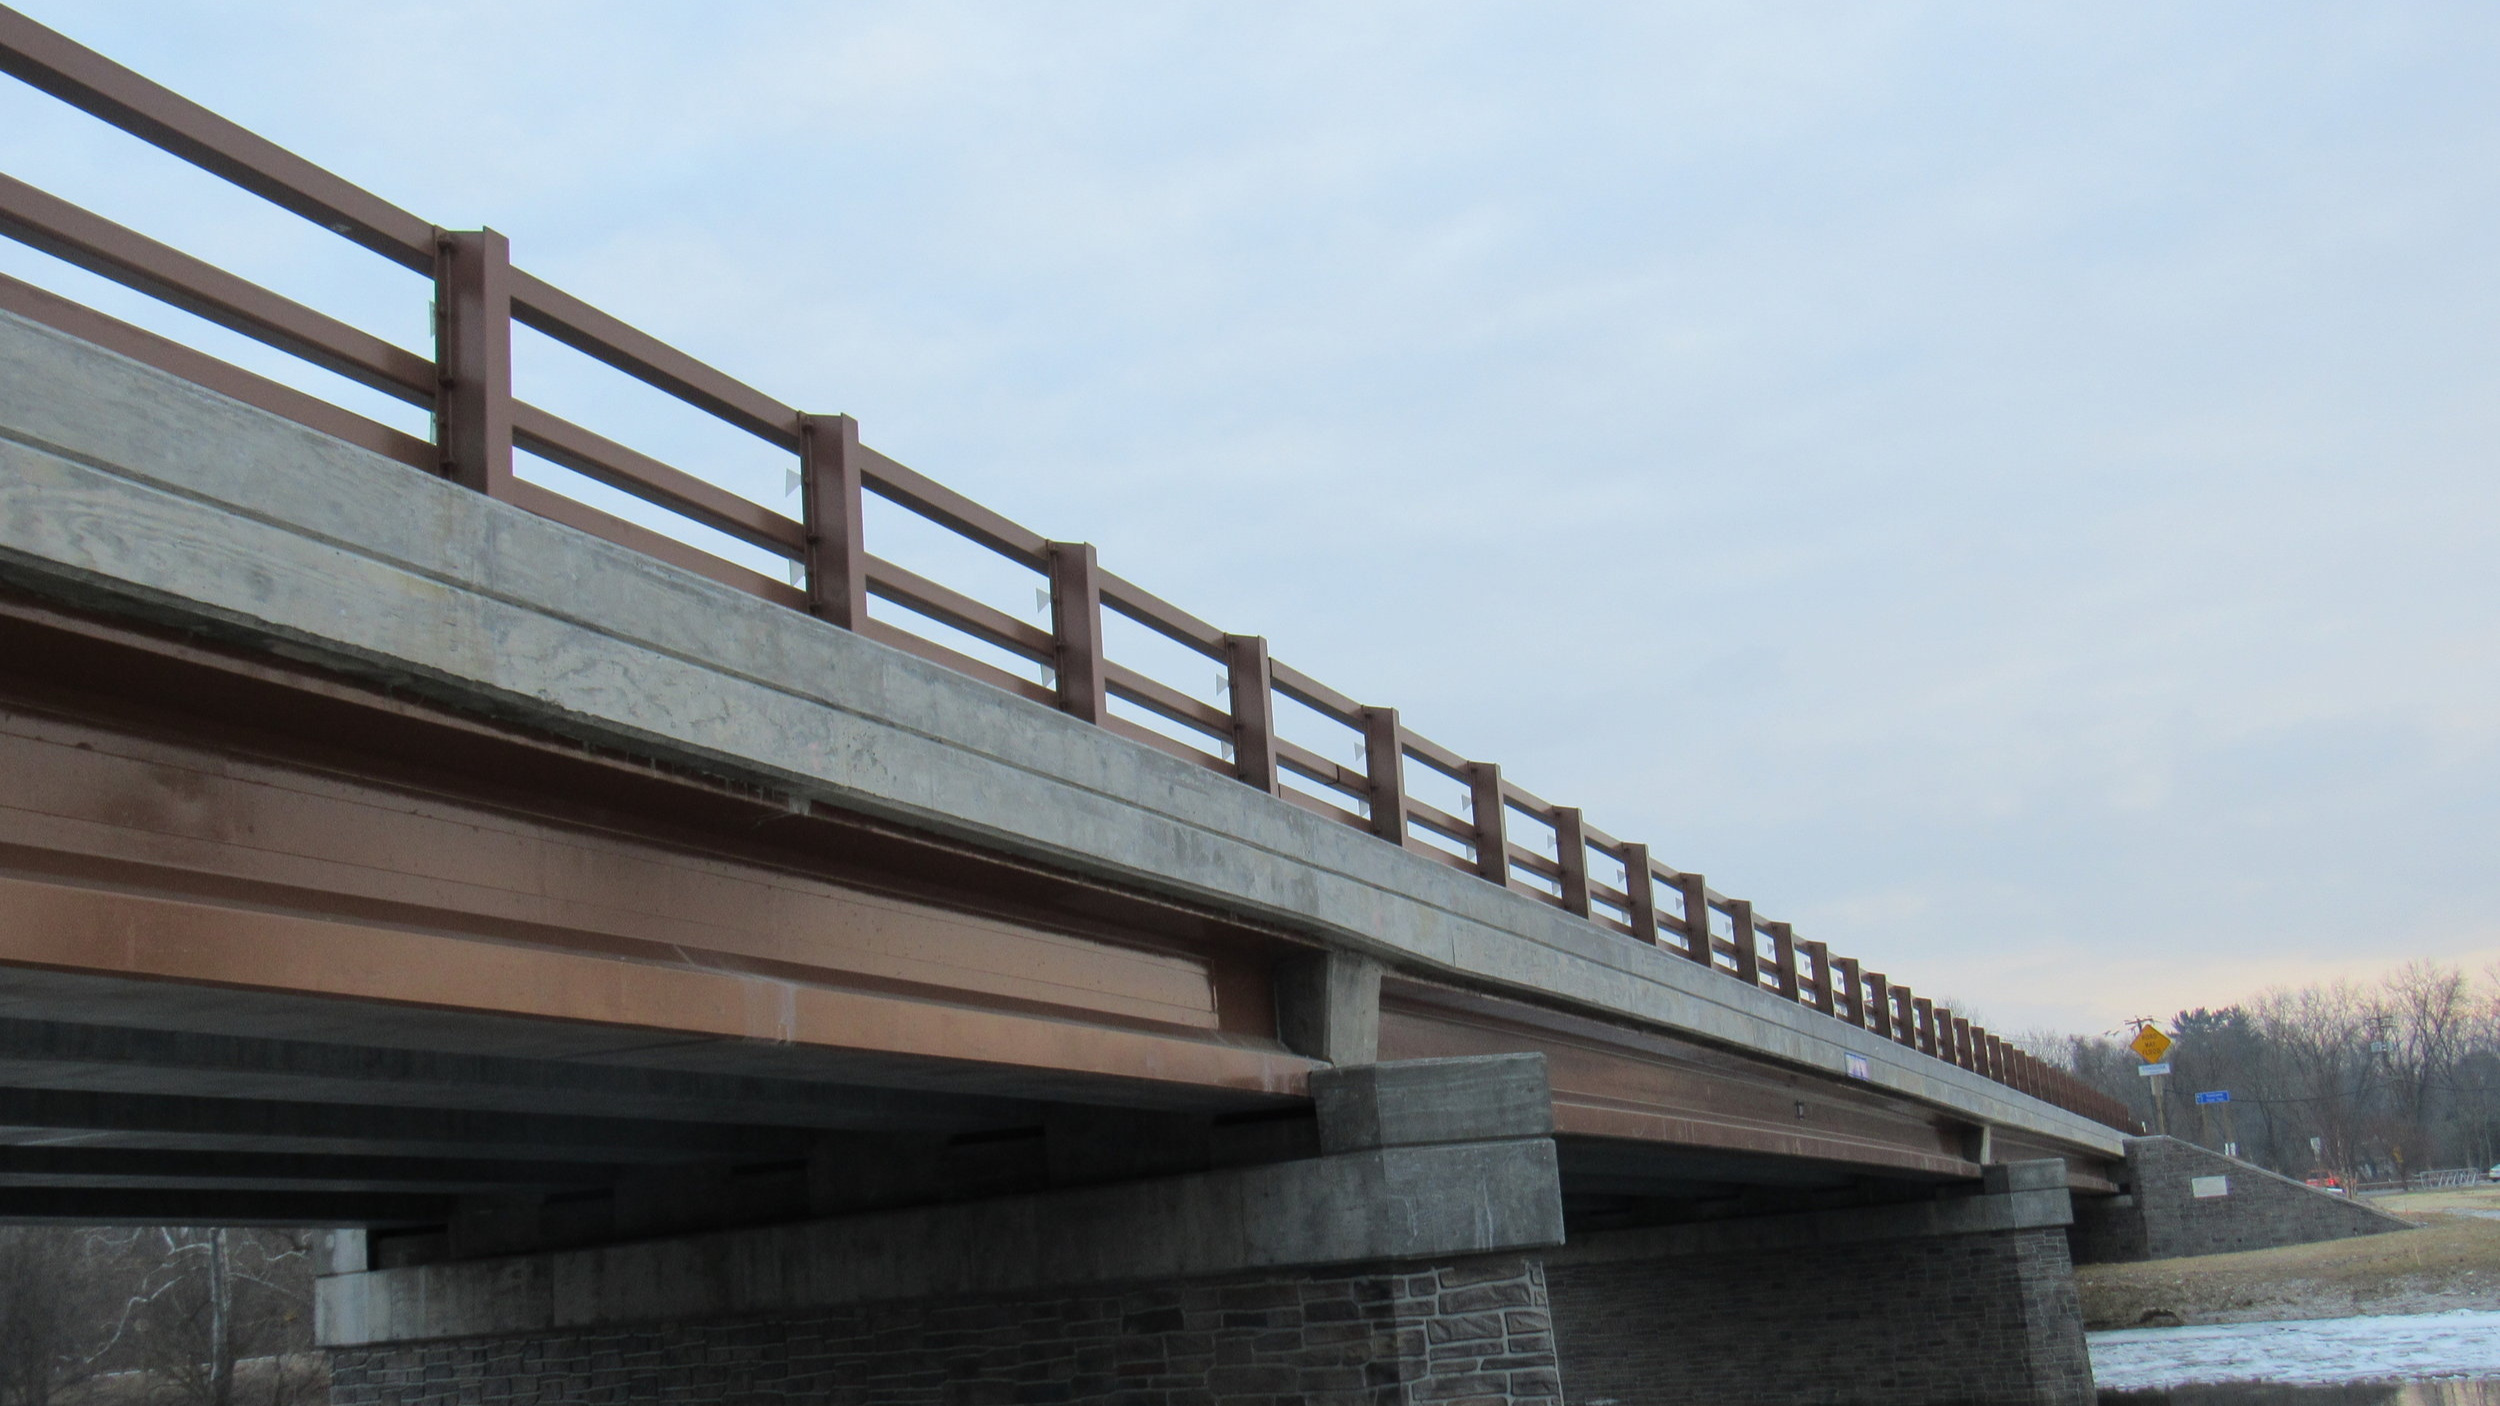 Bridge Railing - QBF has the ability to fabricate state standard railings, as well as, all of your custom steel railing needs.